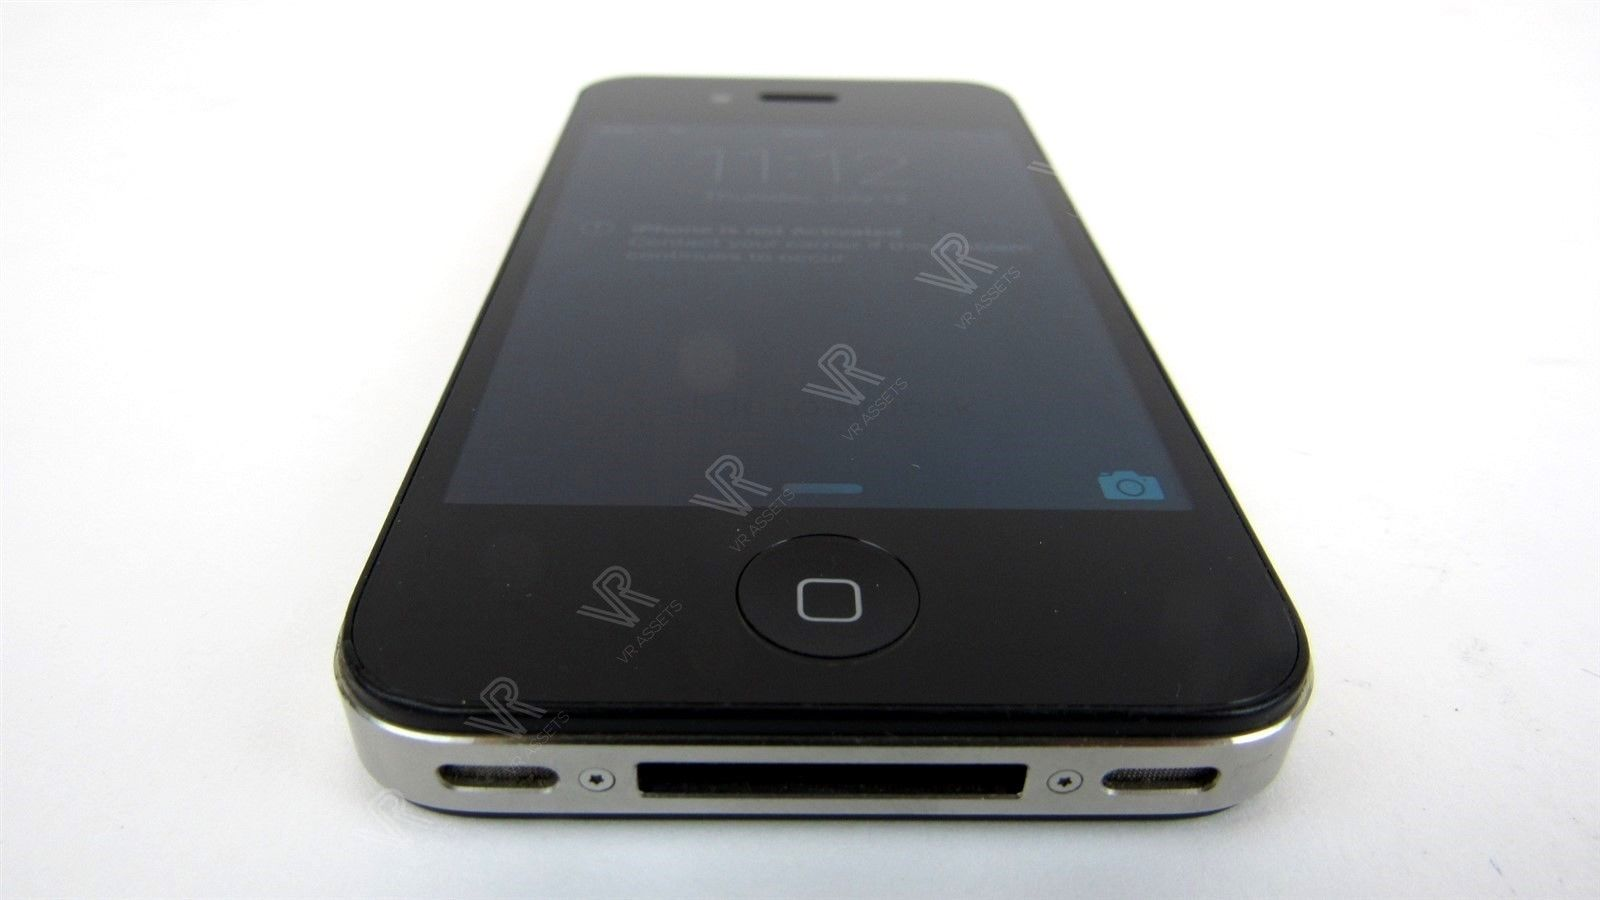 Apple iPhone 4s 8GB Black (Sprint) Smartphone MF269LL/A A1387